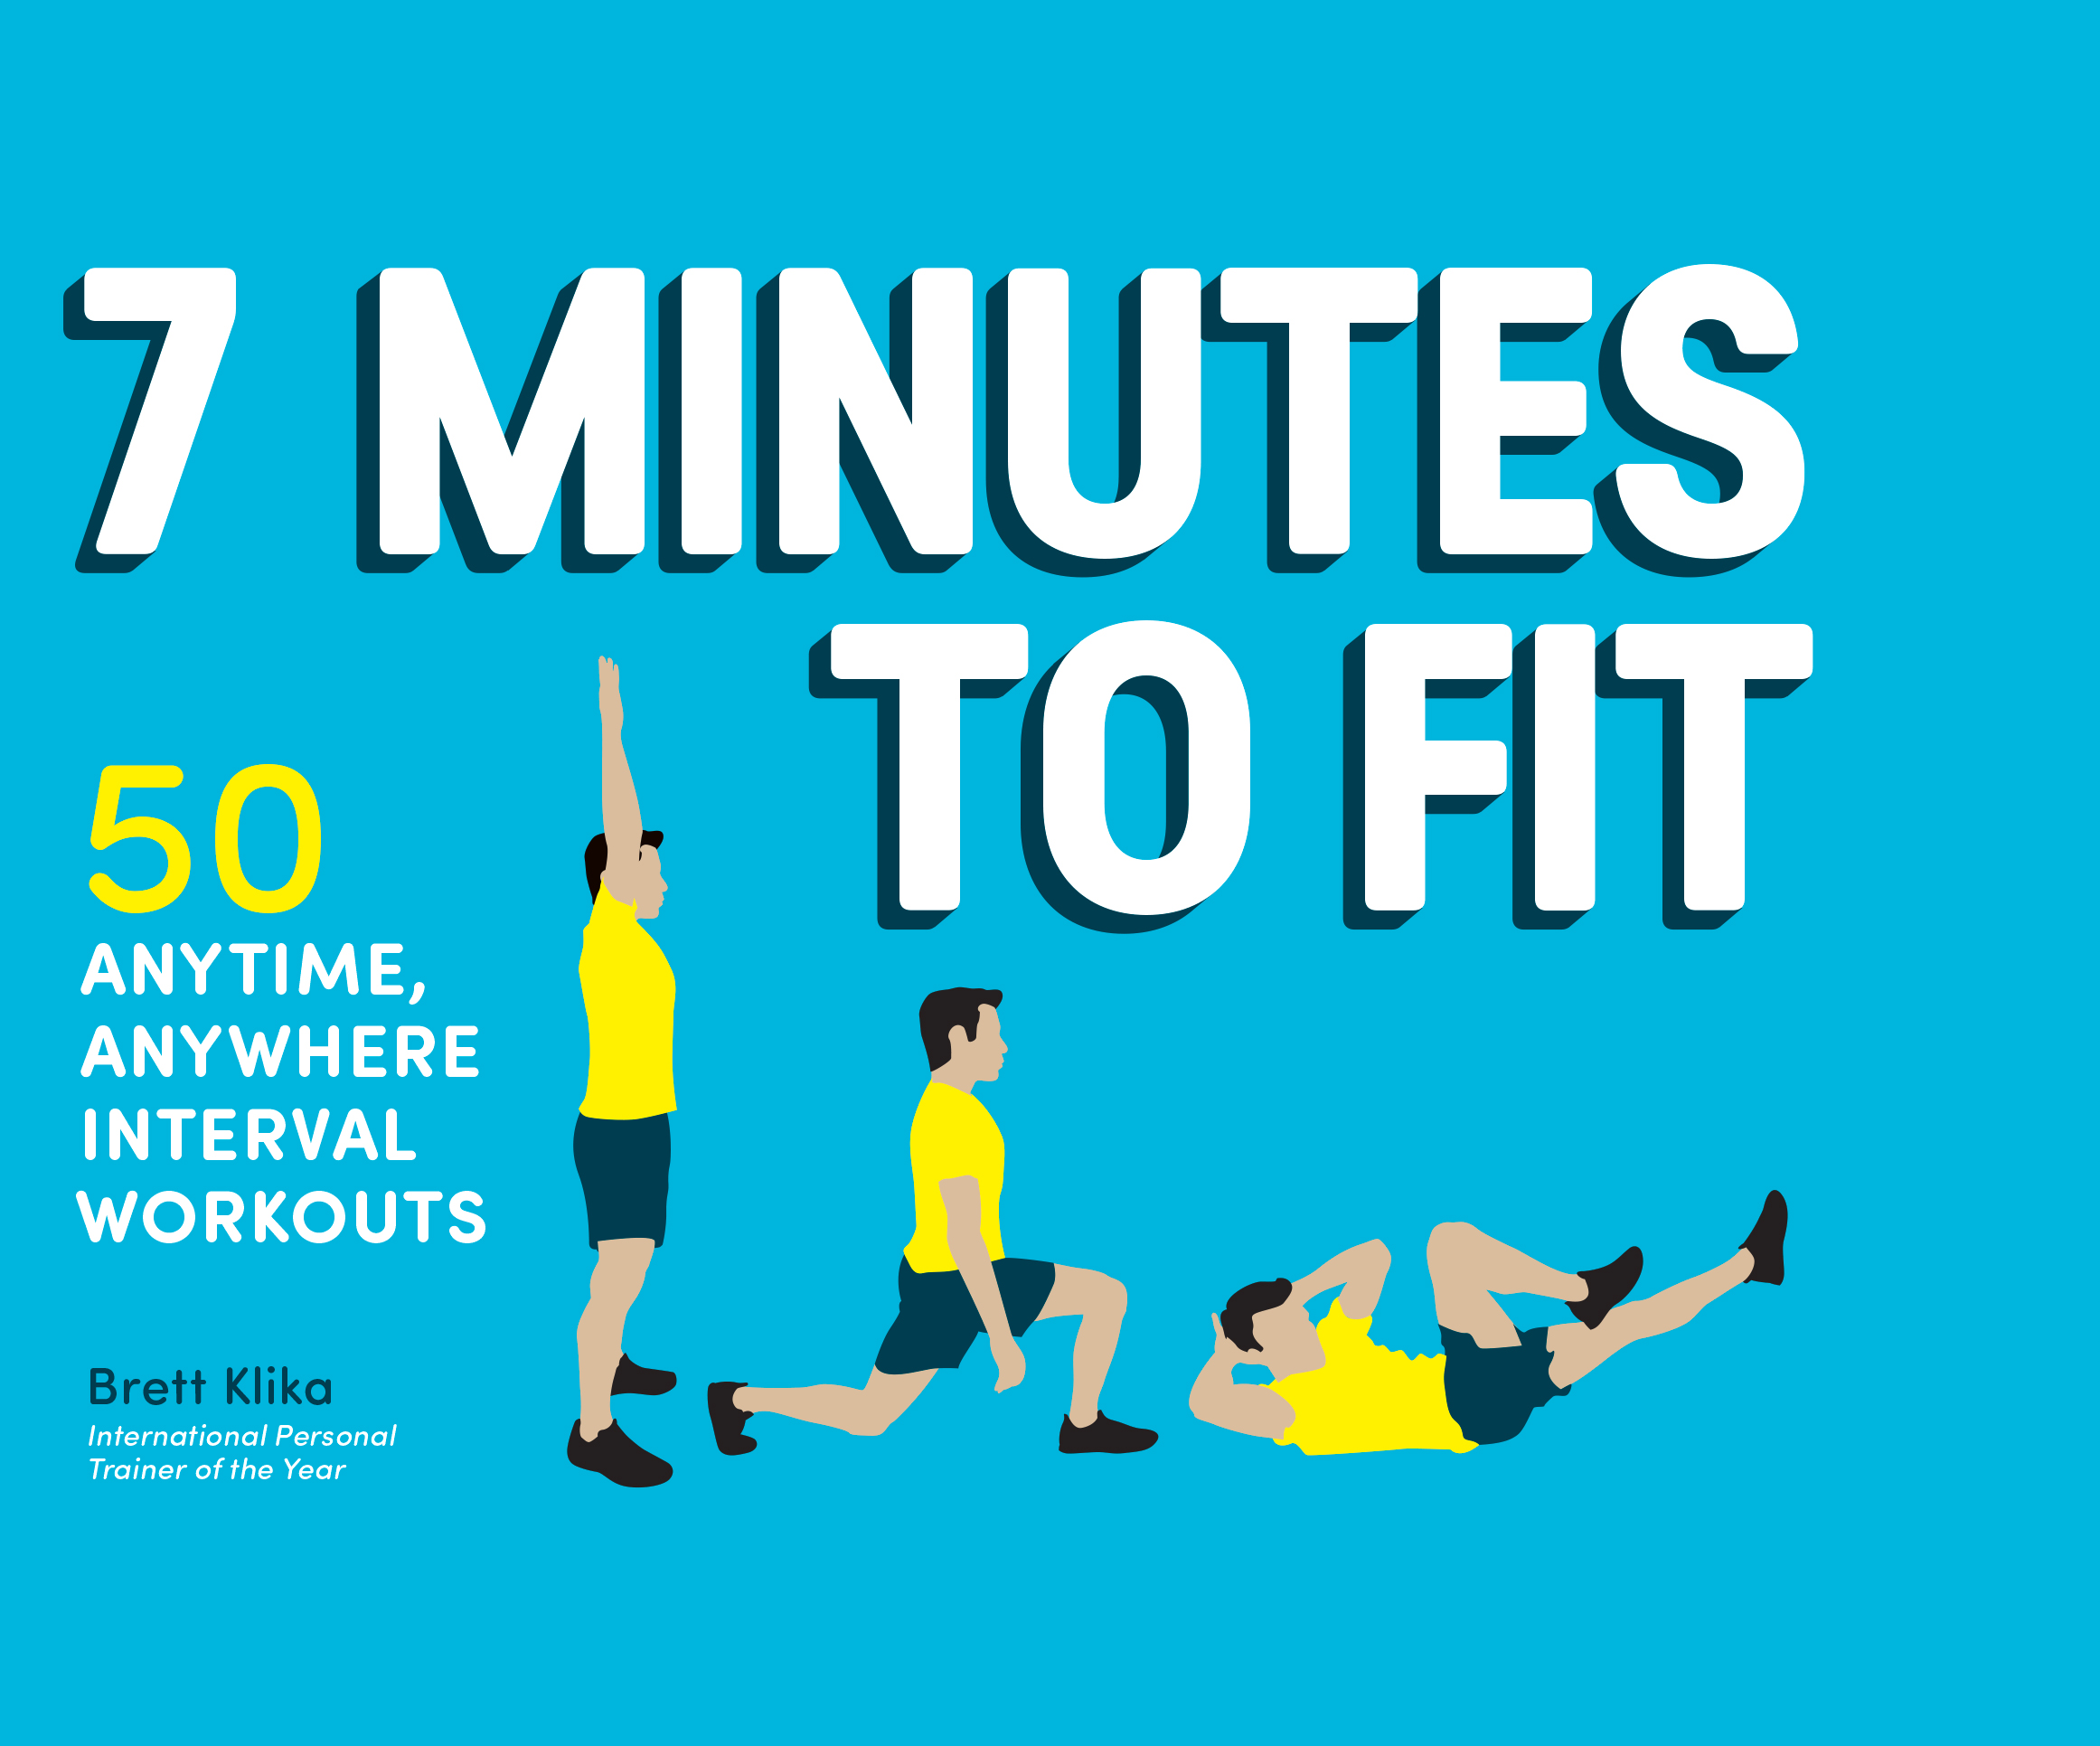 7 Minutes to Fit 50 Anytime, Anywhere Interval Workouts